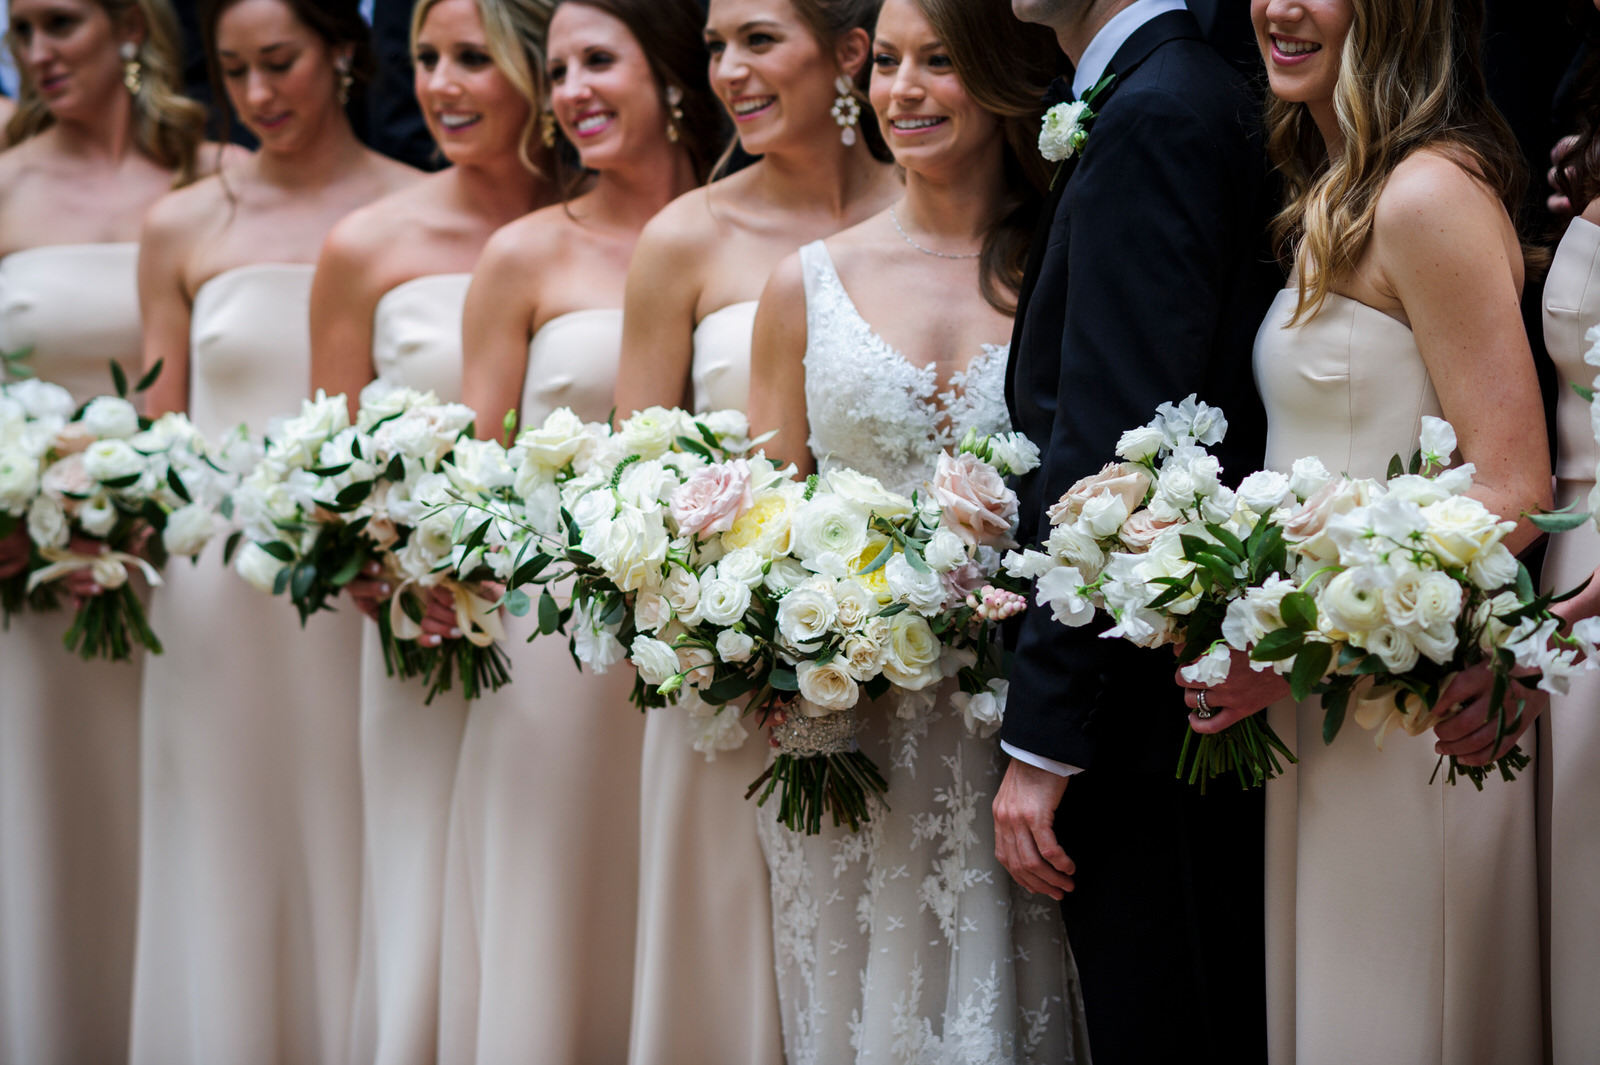 Bride with bridesmaids and groom. Blush, white and green bouquets in a lush garden style. Houston, Texas. Maxit Flower Design,  Alyssa Meeks  ,  Chris Bailey Photography